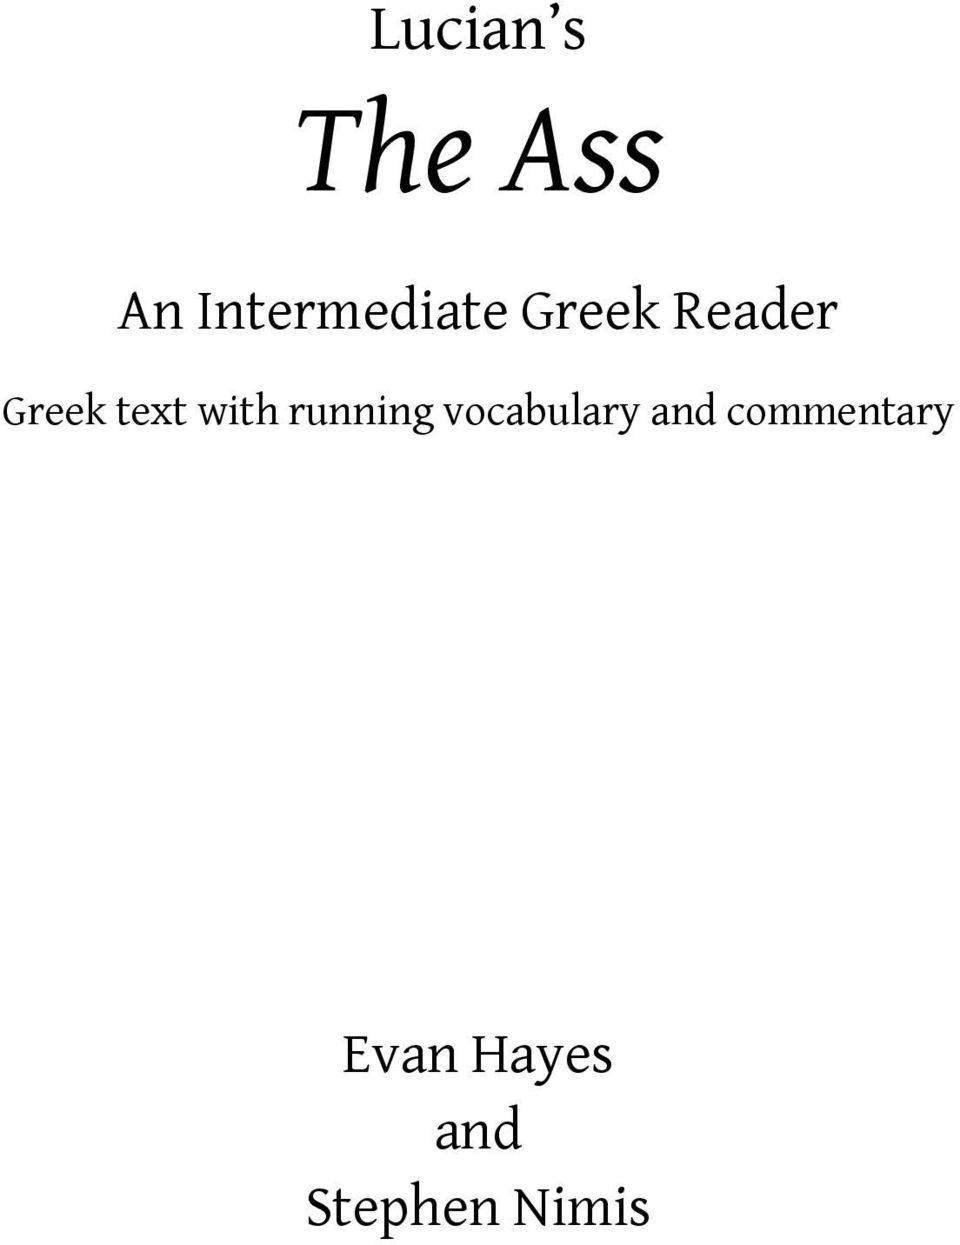 Greek text with running